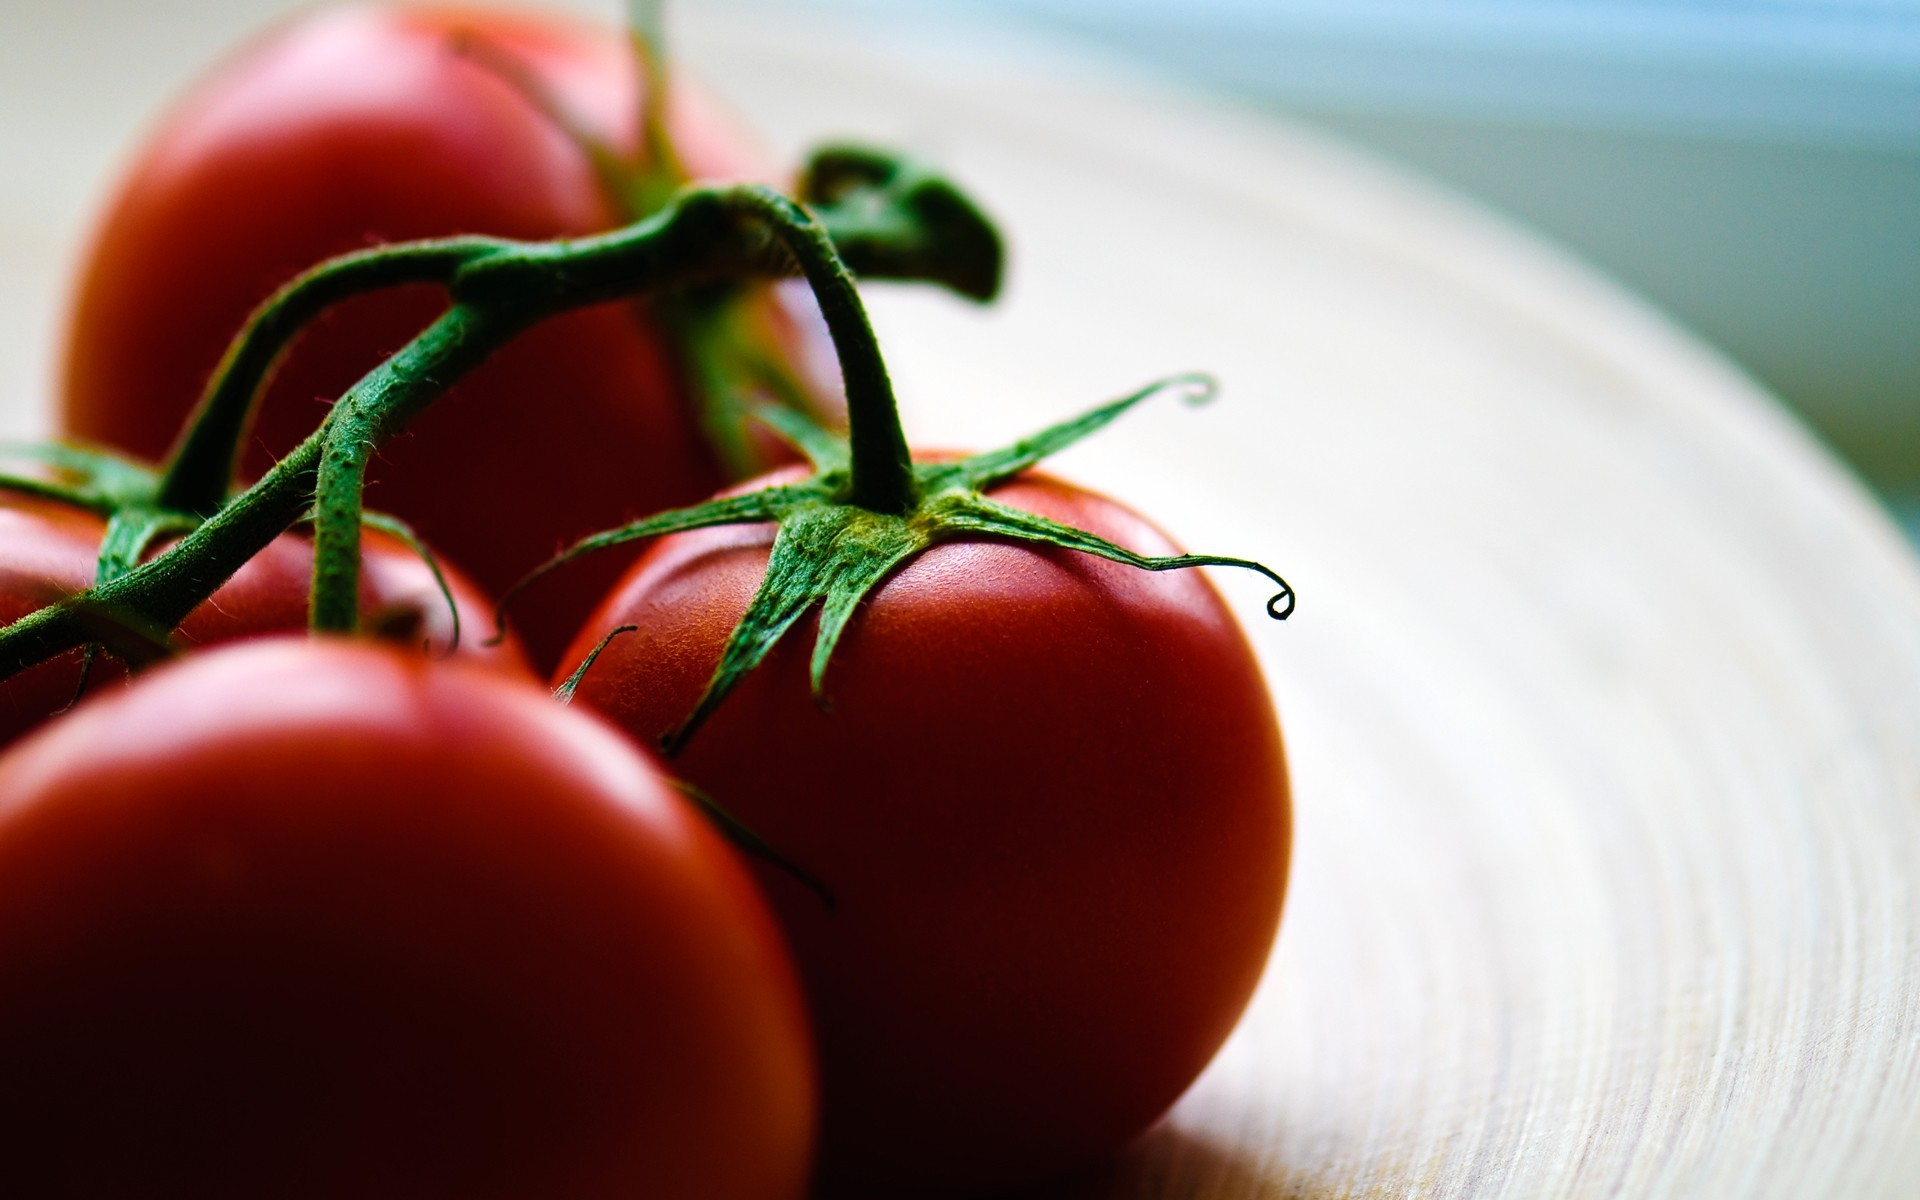 tomatoes-wallpaper-hd-44462-45588-hd-wallpapers